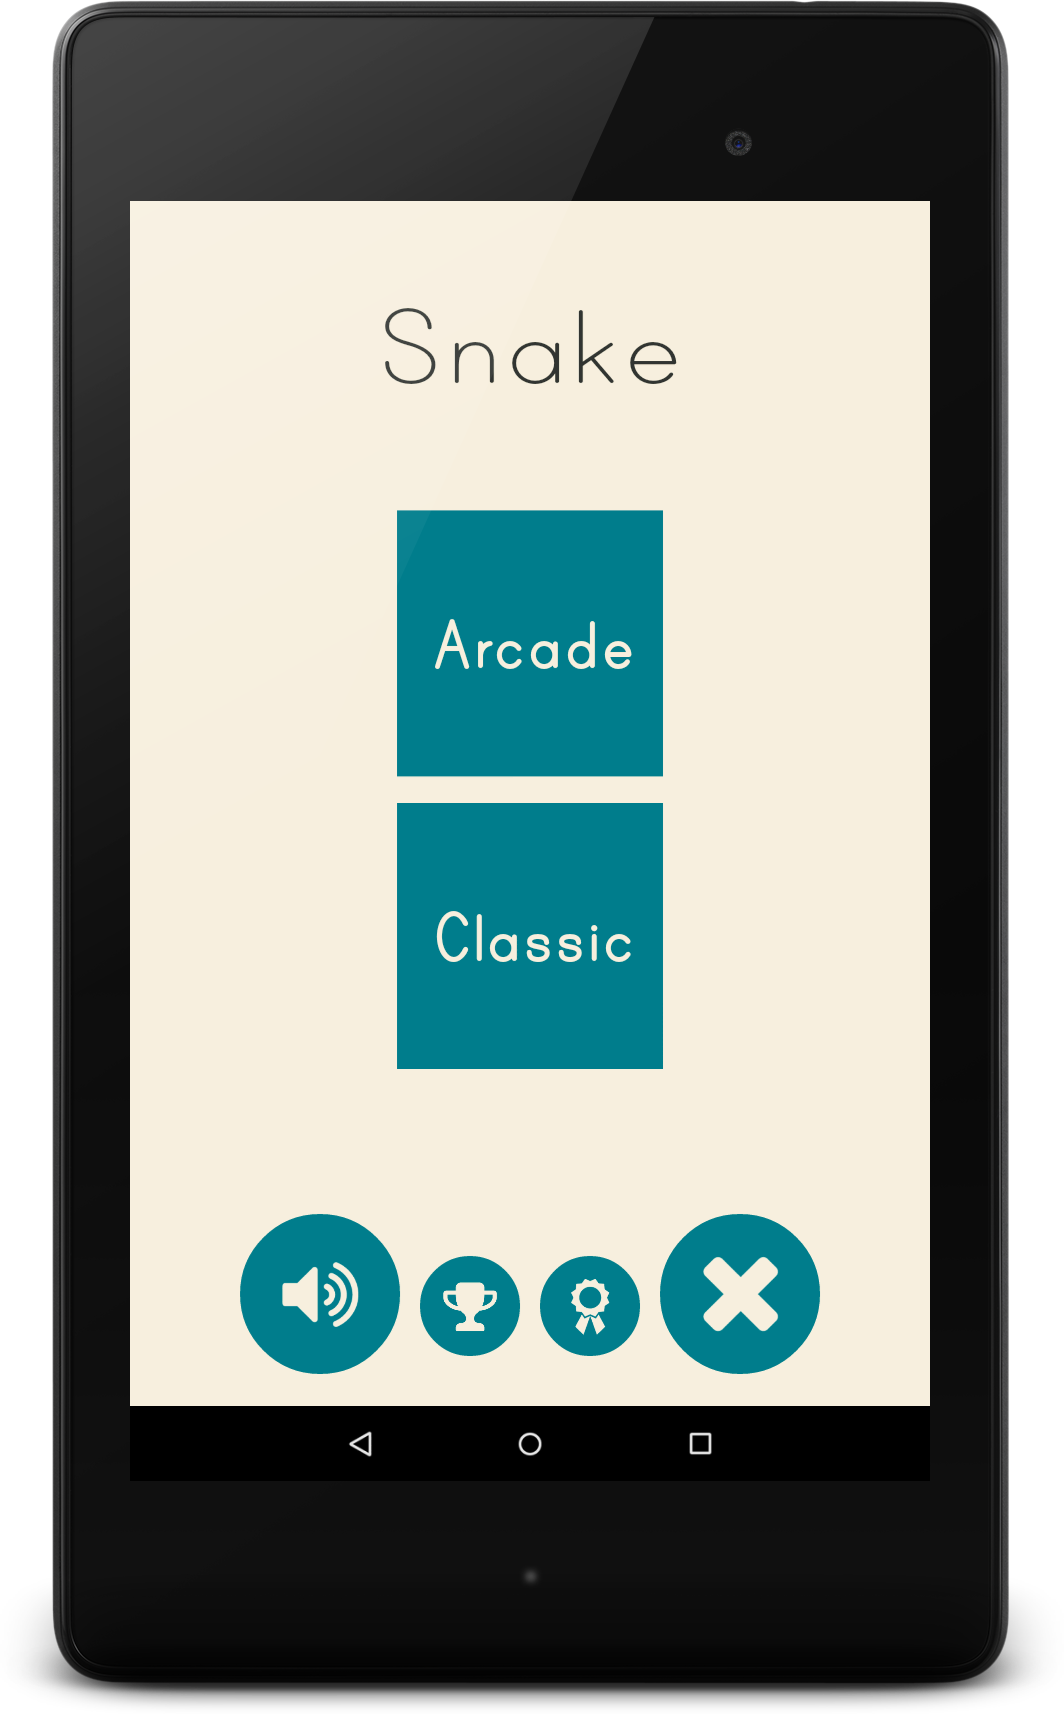 Snake classic android game by neurondigital codecanyon snake classic android game baditri Gallery